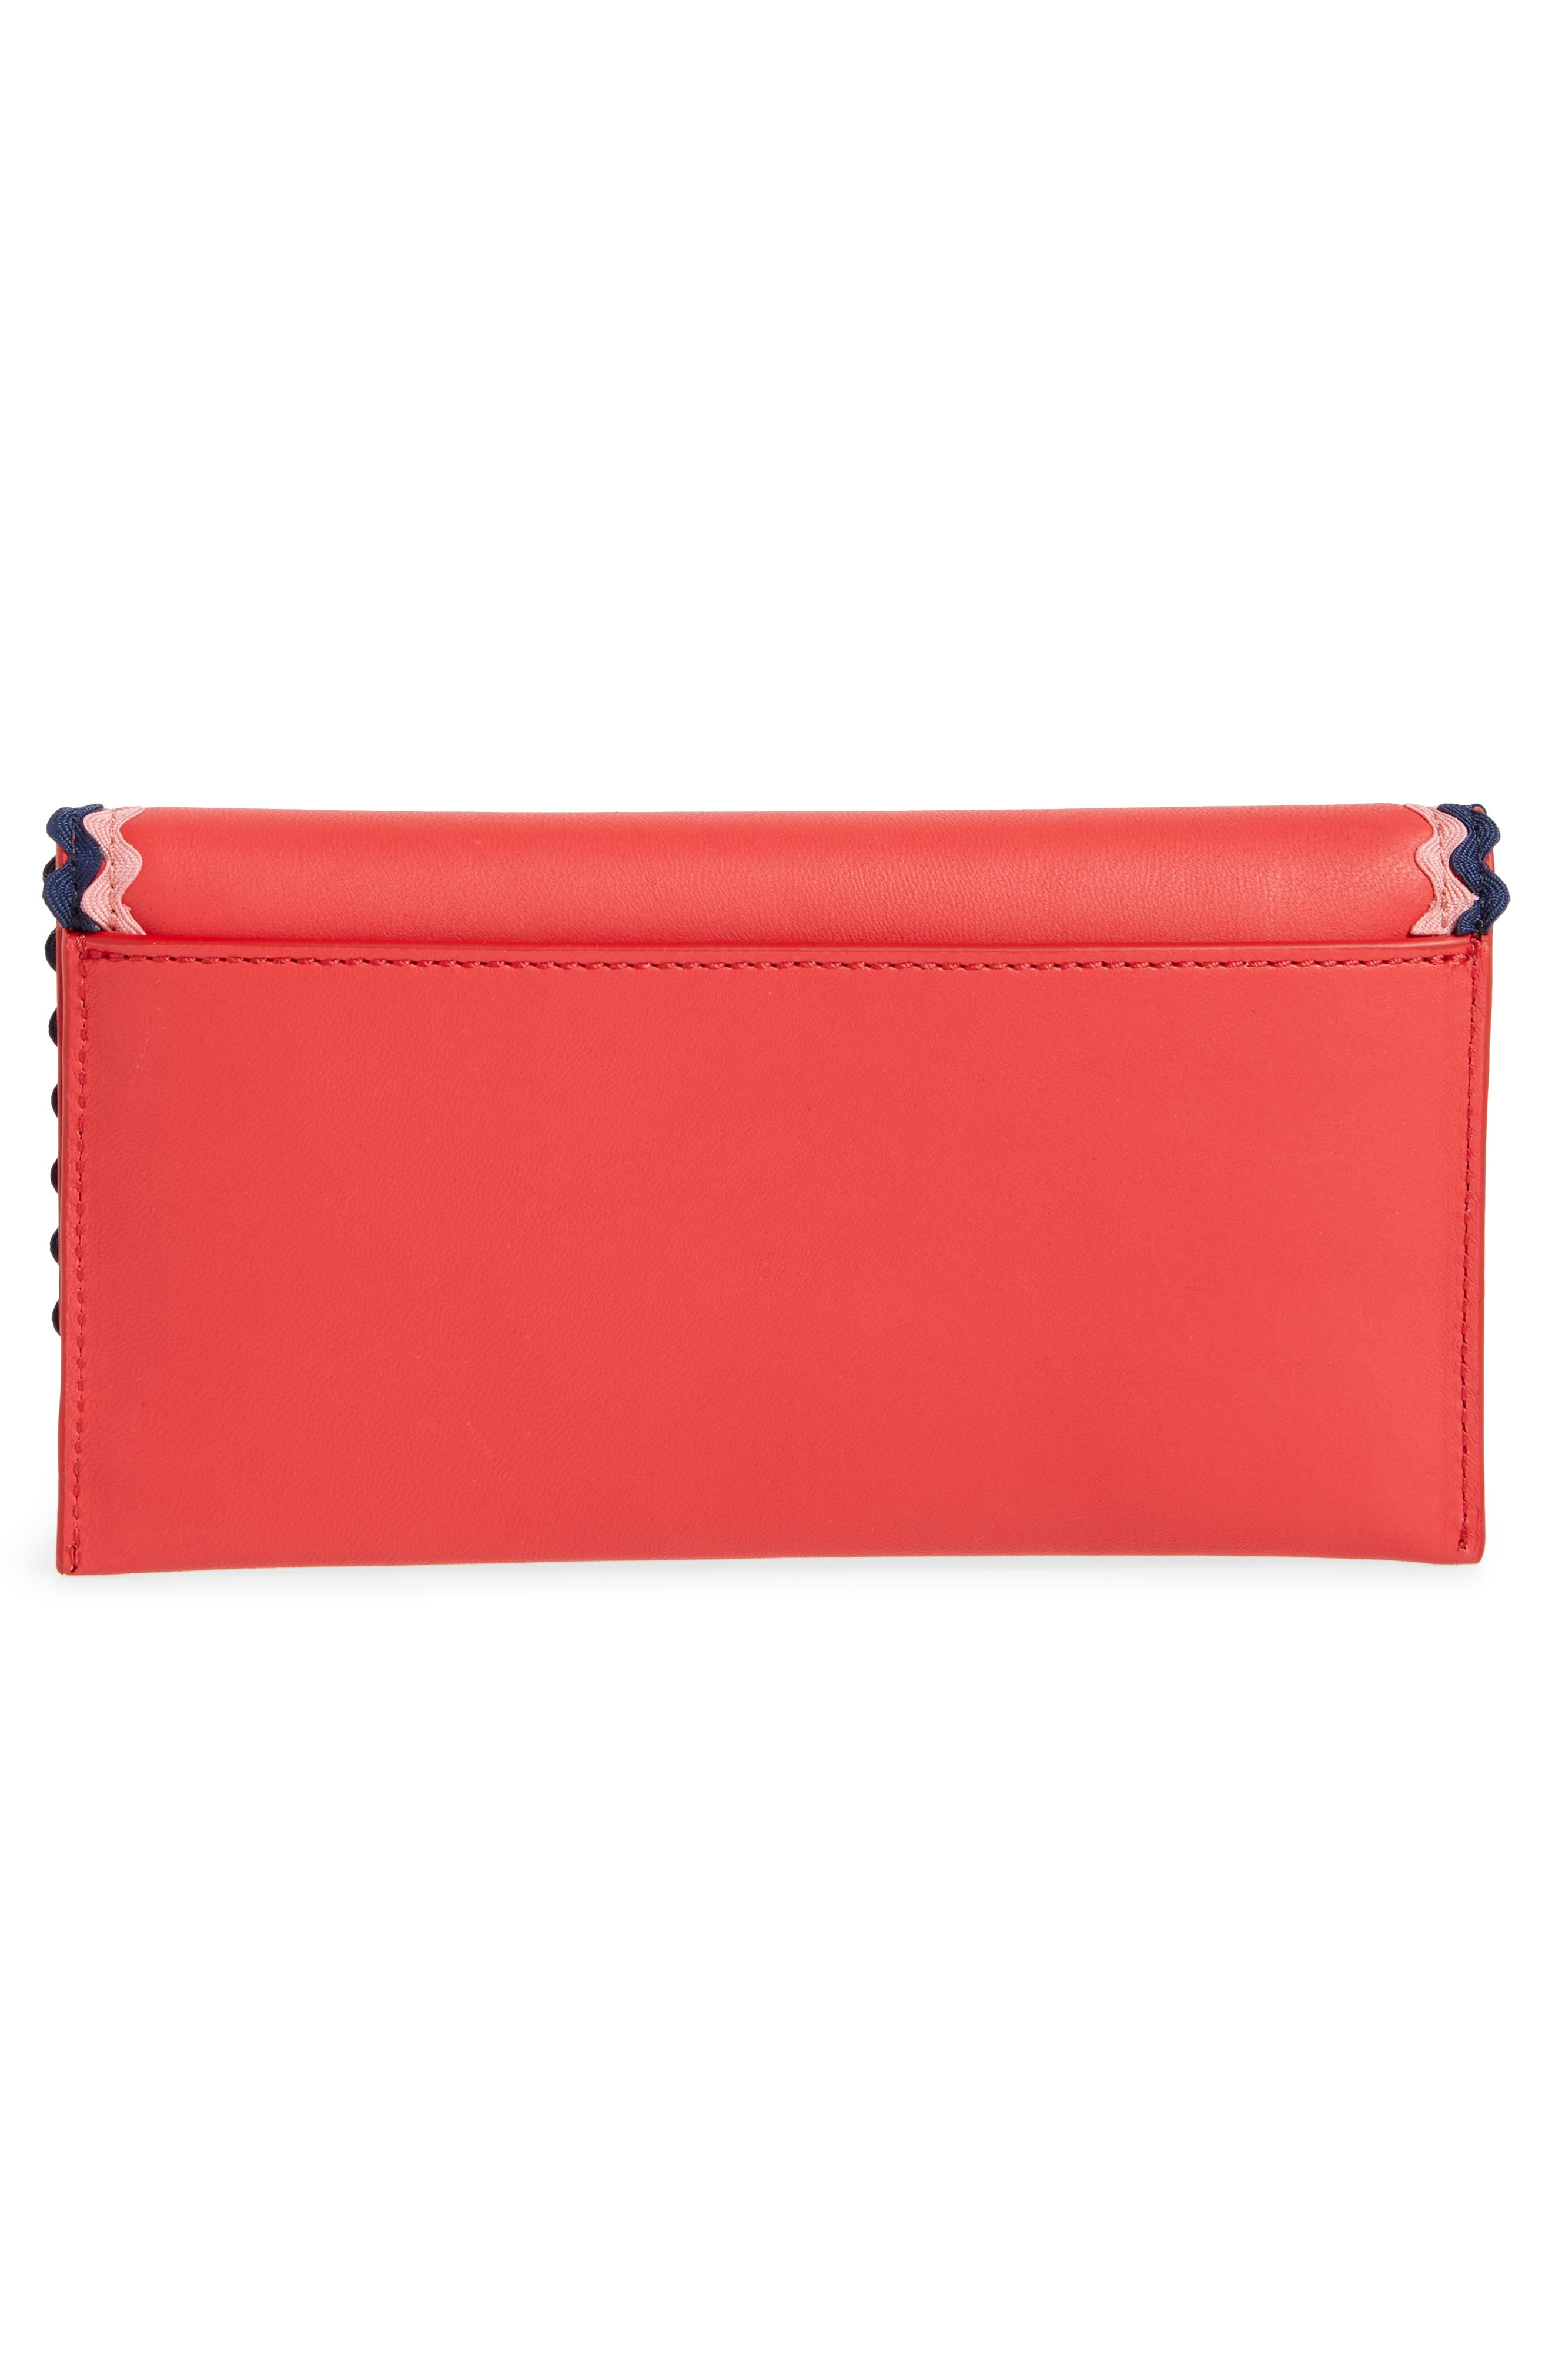 Everything Embellished Leather Wallet,                             Alternate thumbnail 4, color,